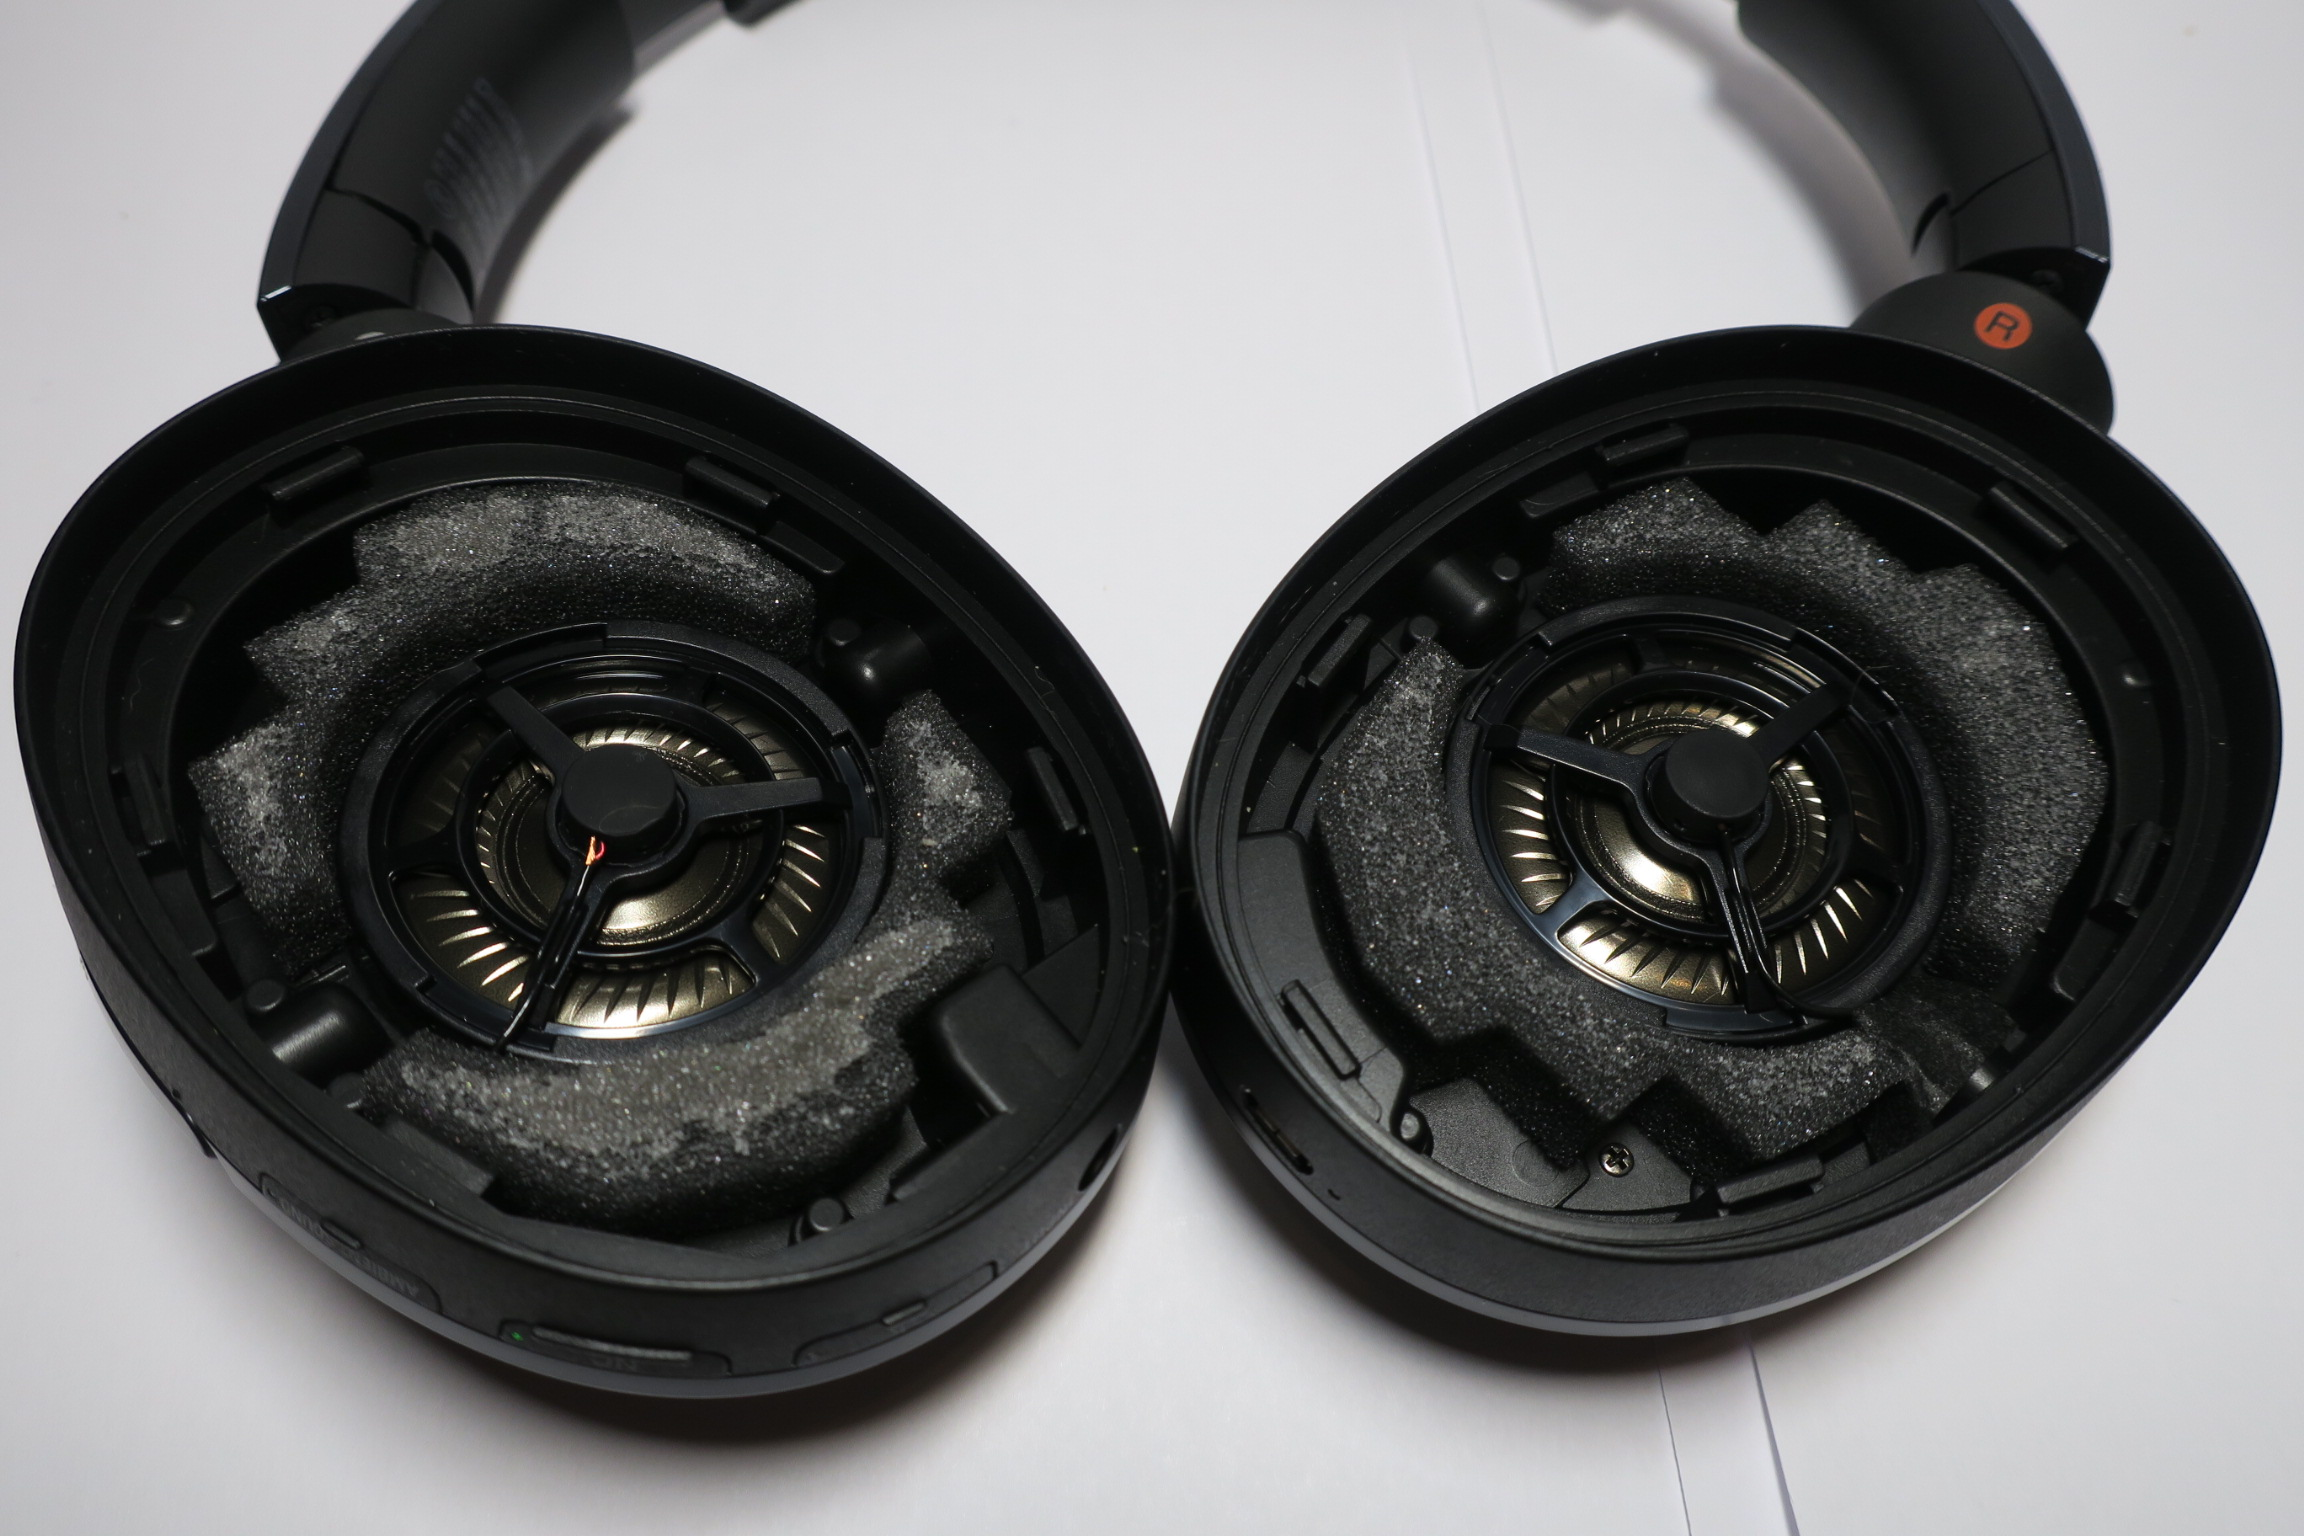 Sony MDR-1000x - earpad replacement & mod | Headphone